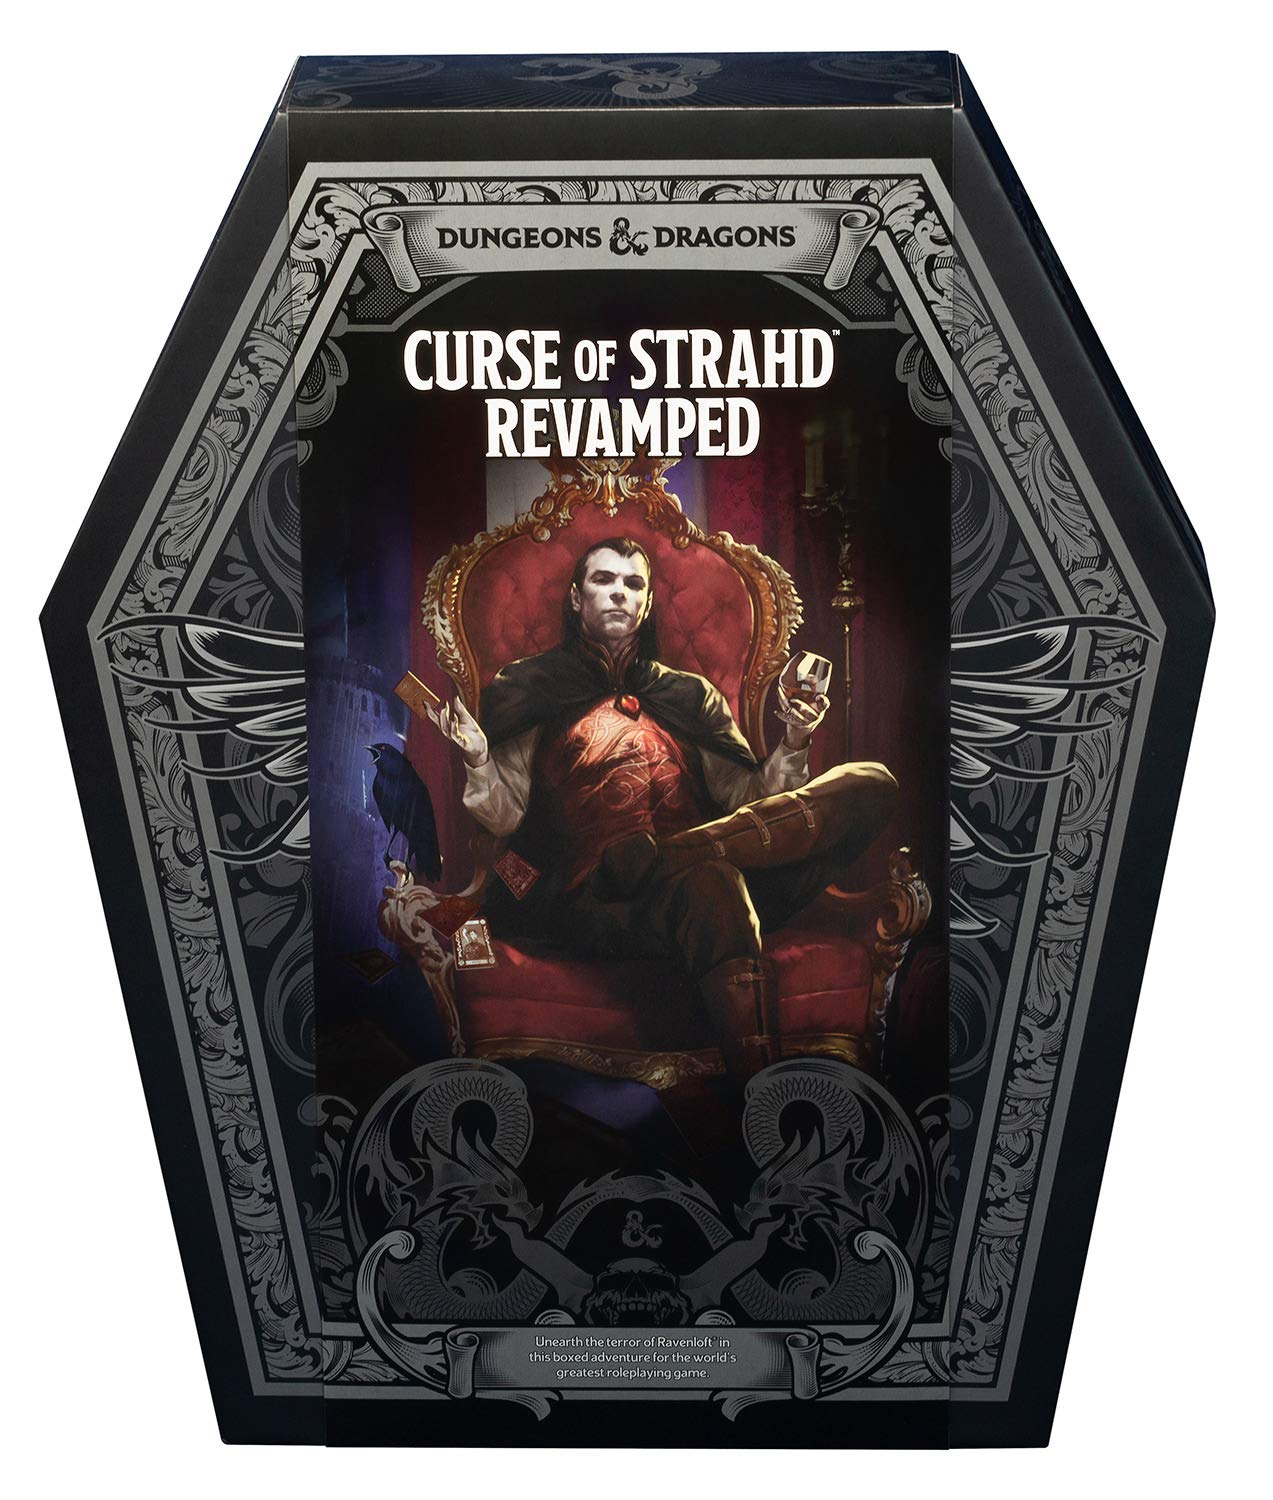 Curse of Strahd: Revamped Premium Edition (D&D Boxed Set) (Dungeons &  Dragons): Wizards RPG Team: 9780786967155: Amazon.com: Books